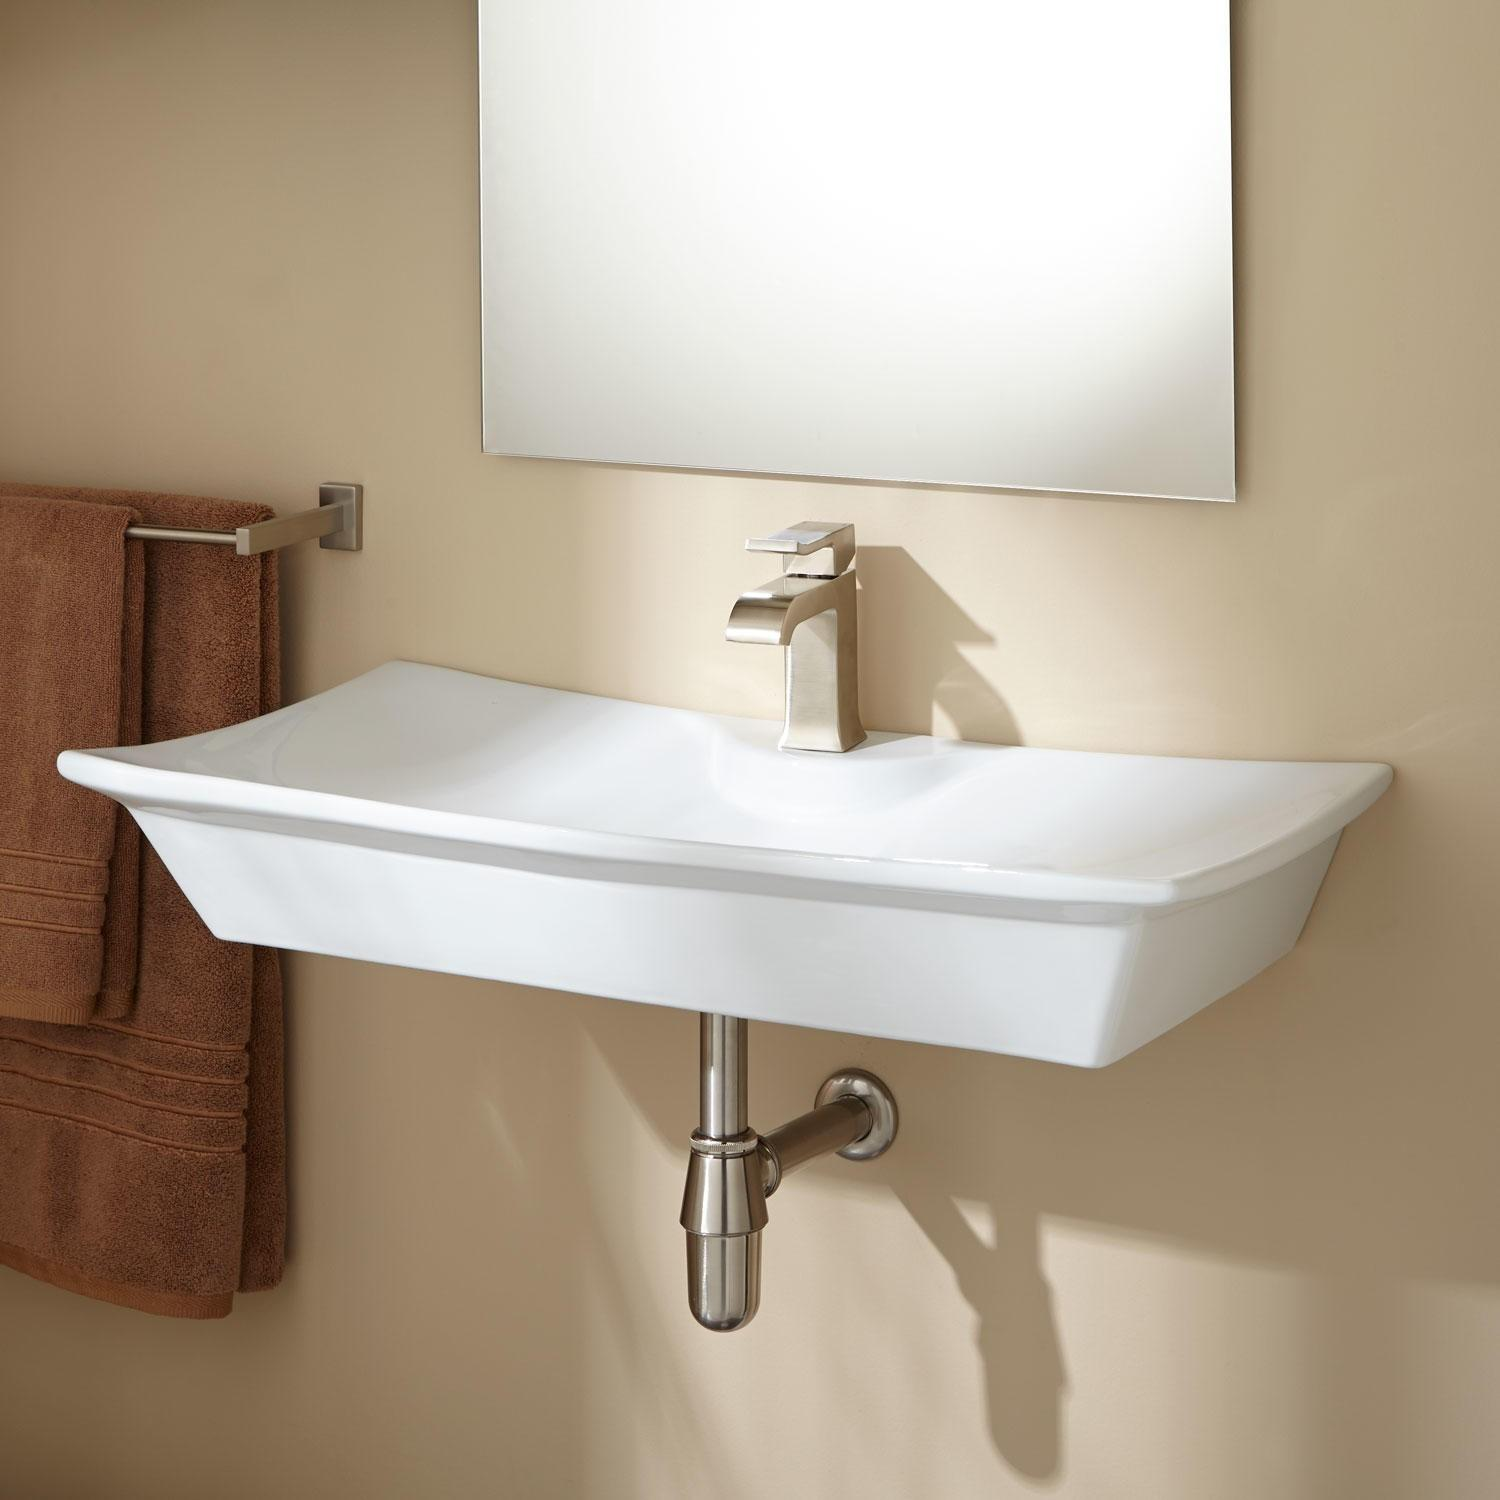 Marvella Porcelain Wall Mount Bathroom Sink